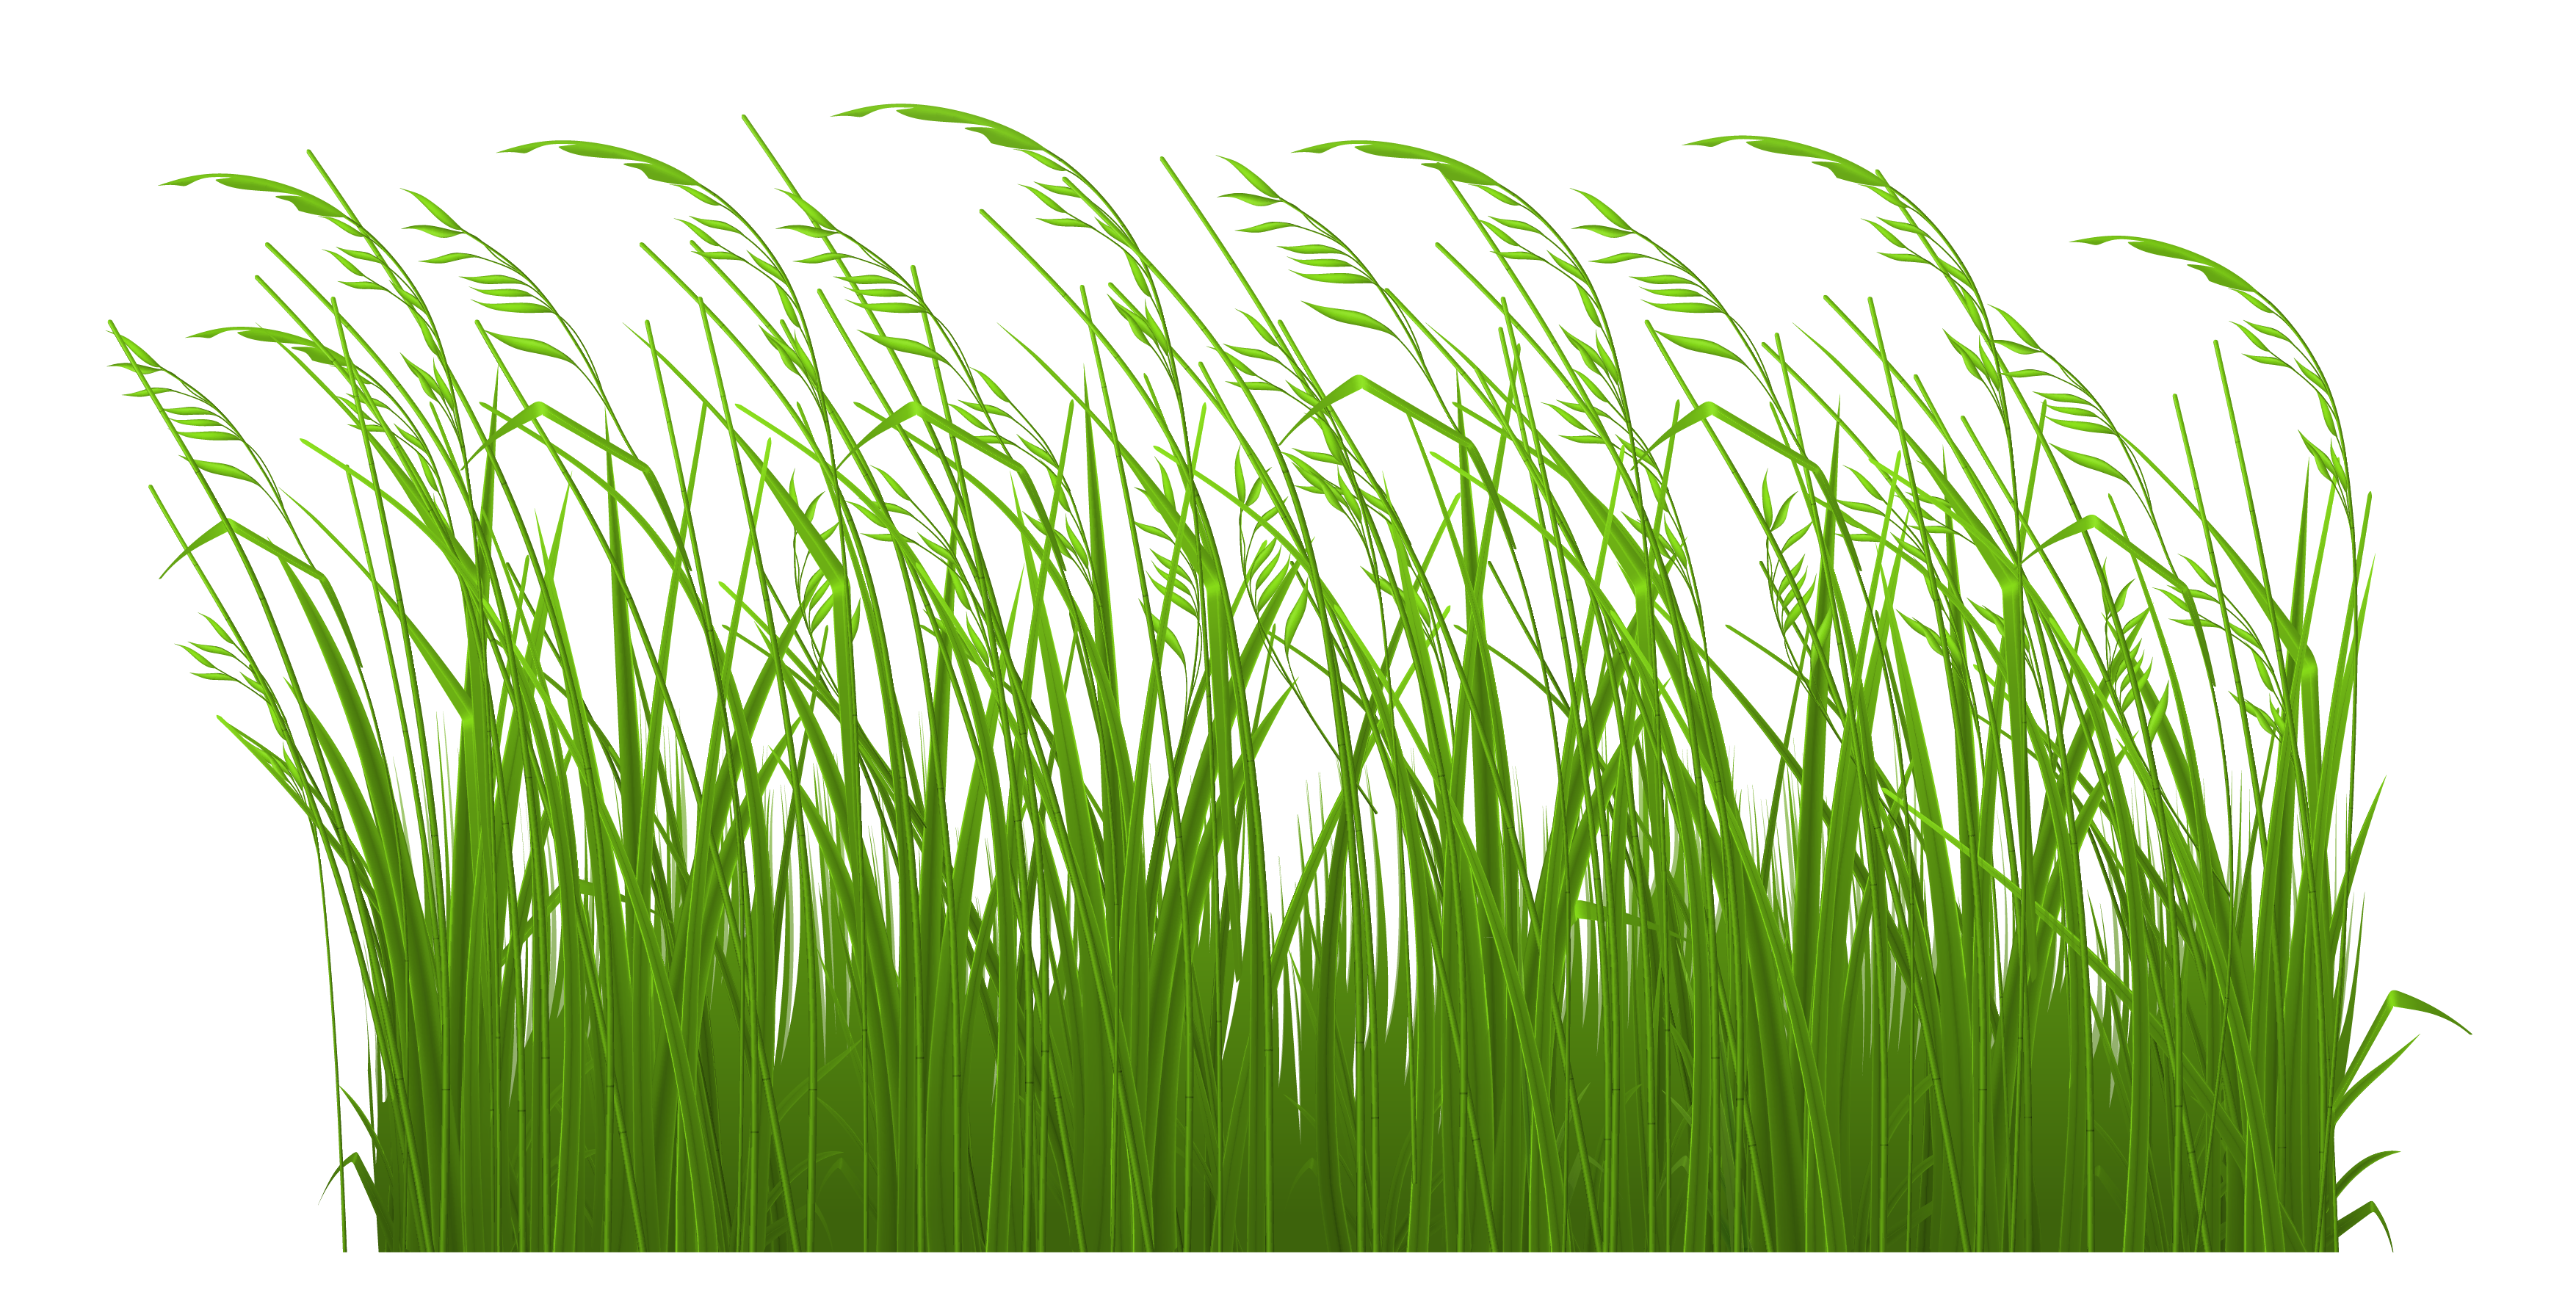 Grass clipart #5, Download drawings